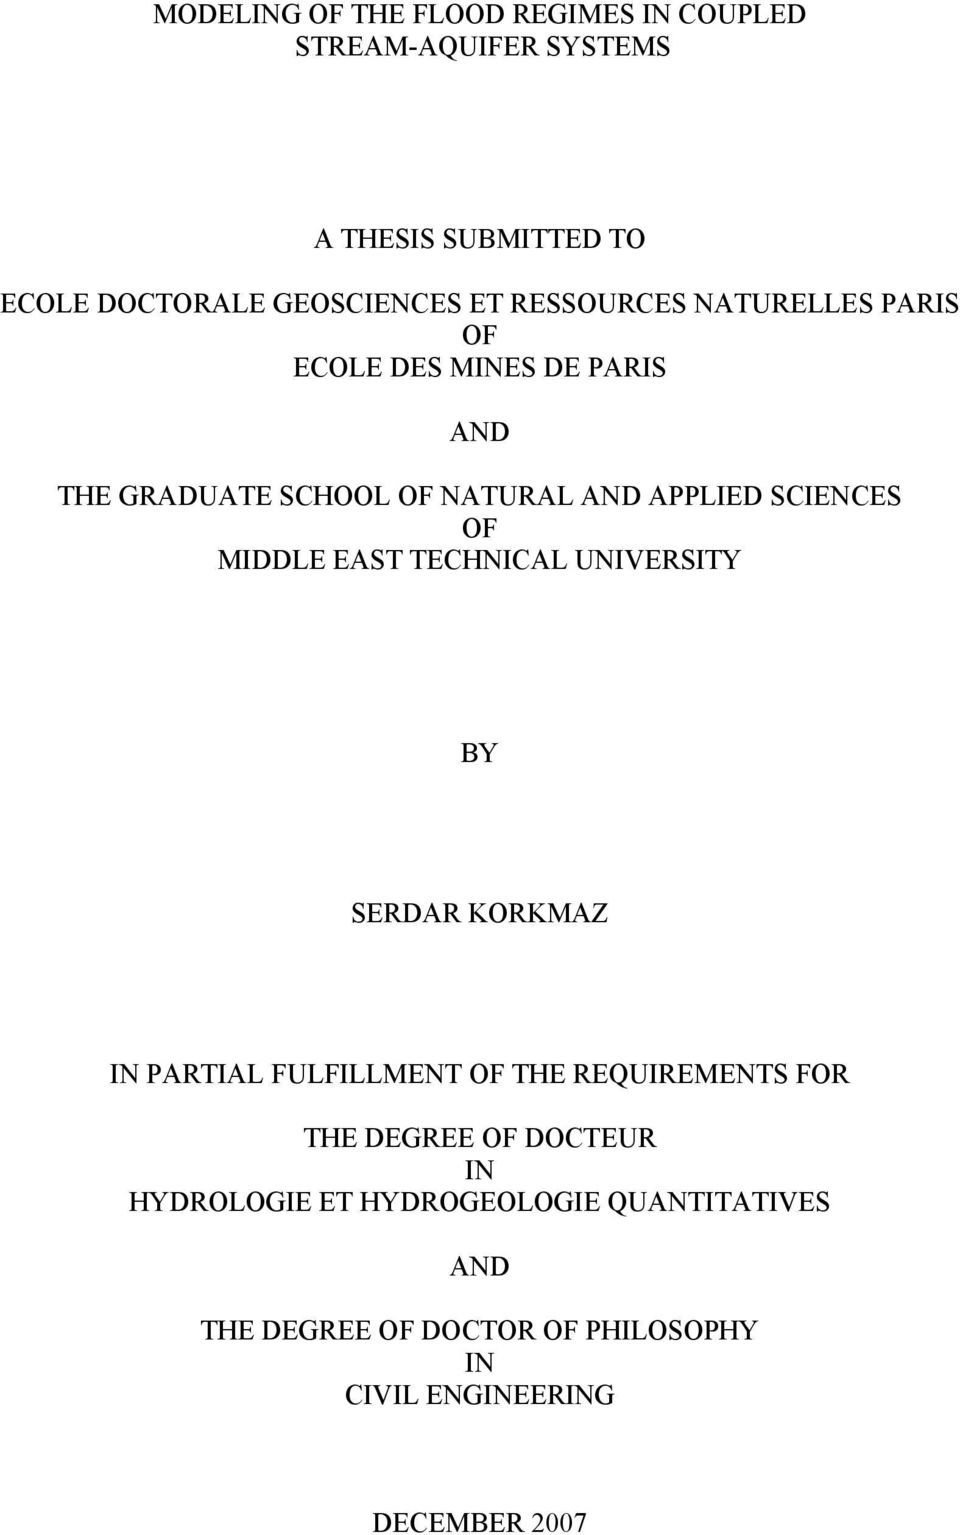 MIDDLE EAST TECHNICAL UNIVERSITY BY SERDAR KORKMAZ IN PARTIAL FULFILLMENT OF THE REQUIREMENTS FOR THE DEGREE OF